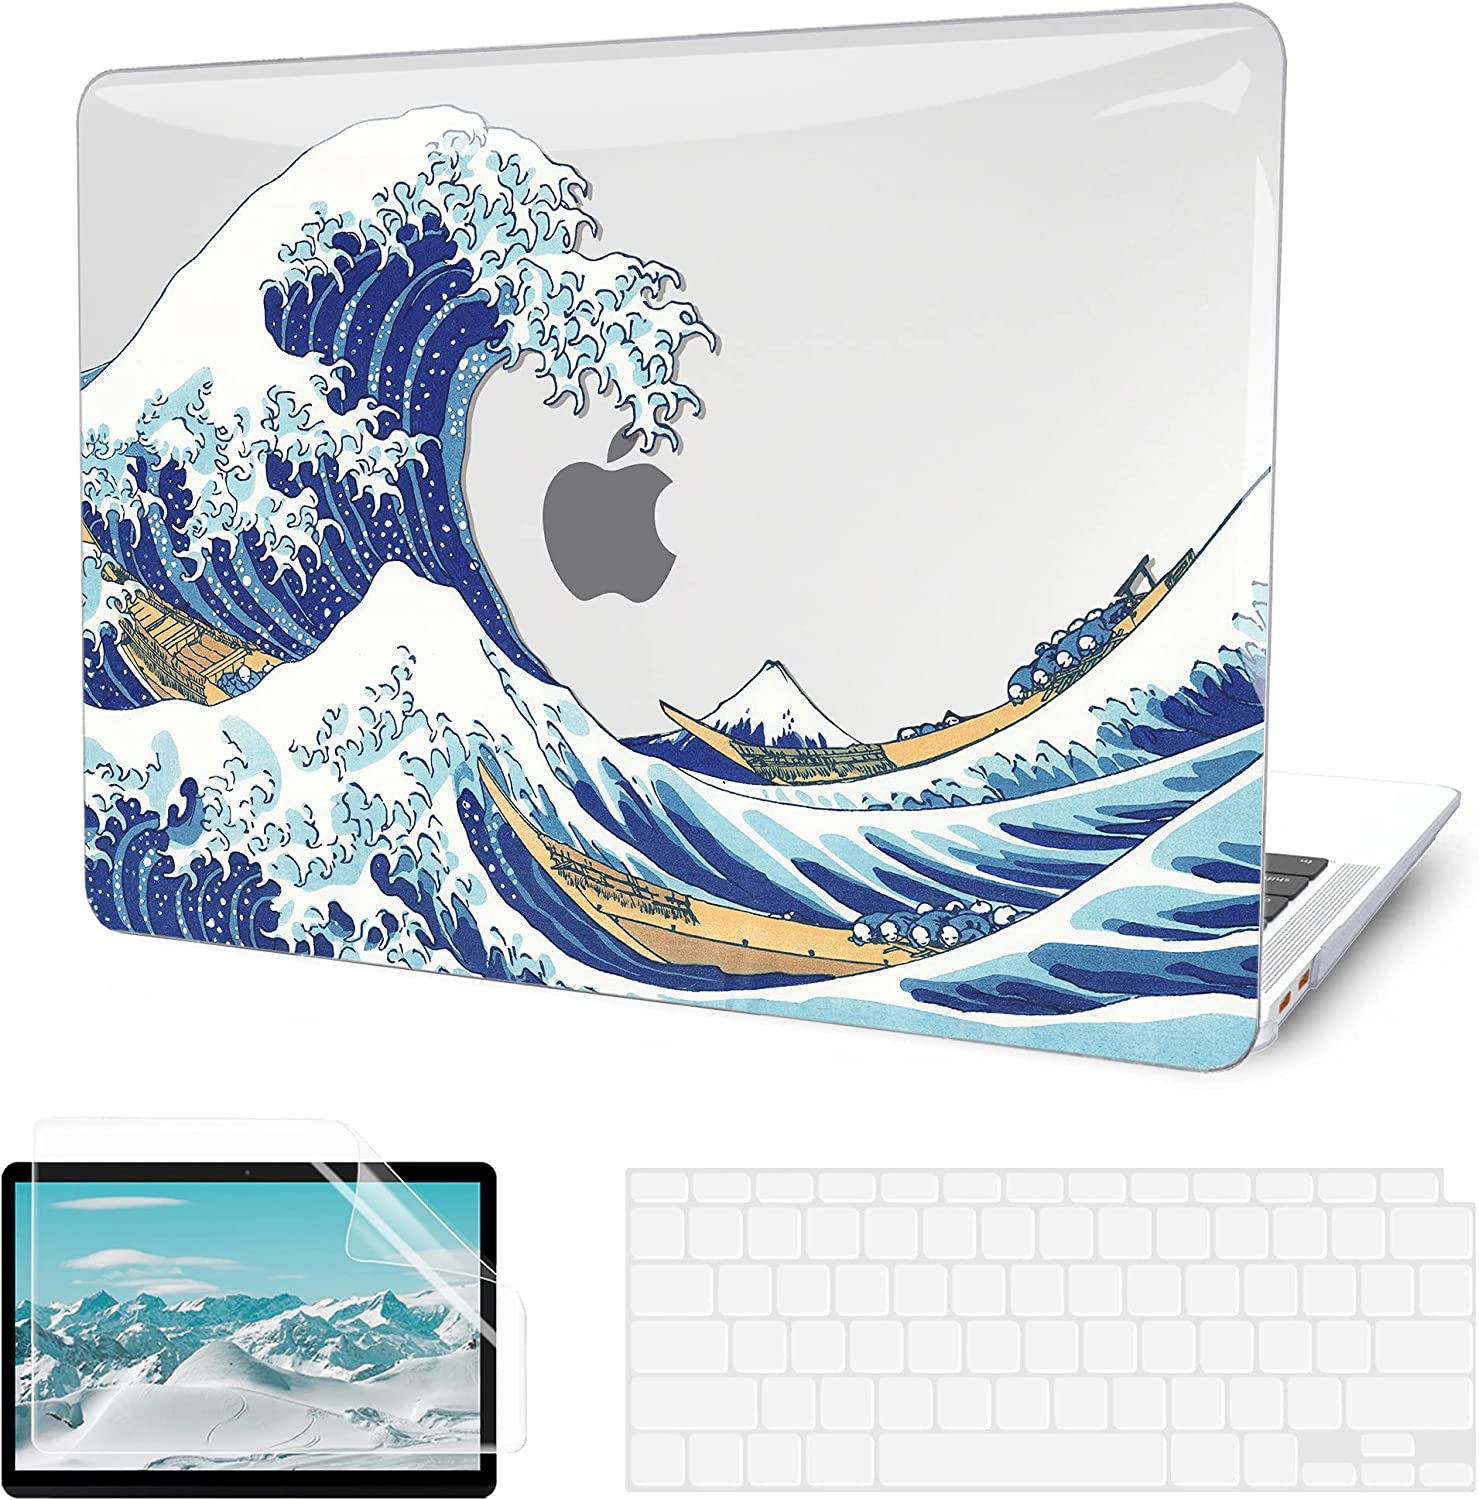 G 1 year warranty JGOO Compatible with MacBook Air 13 2 Inch 2019 2021 Case 2020 2021new shipping free shipping